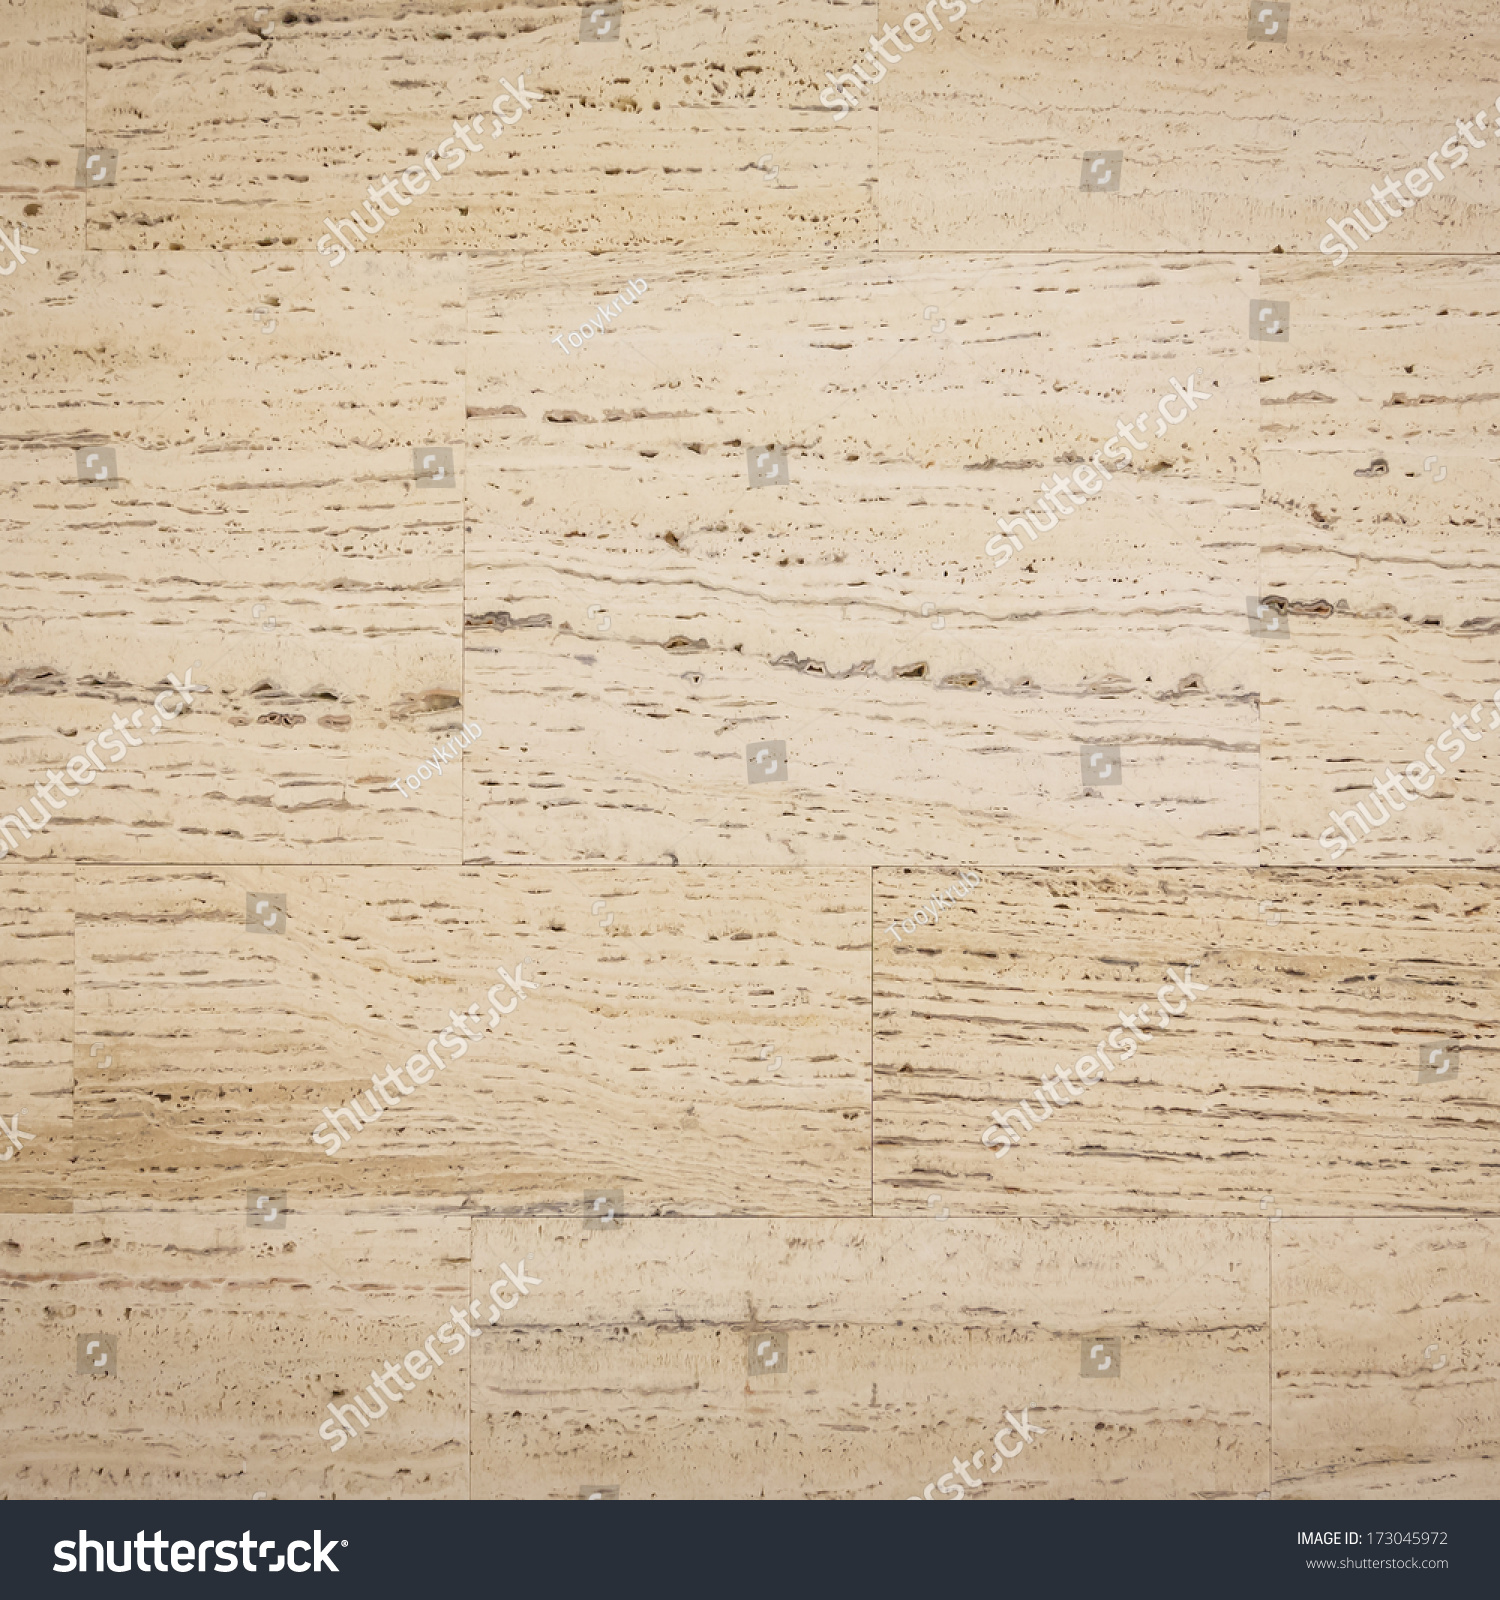 Light Brown Granite Tiles Texture Stock Photo 173045972 Shutterstock